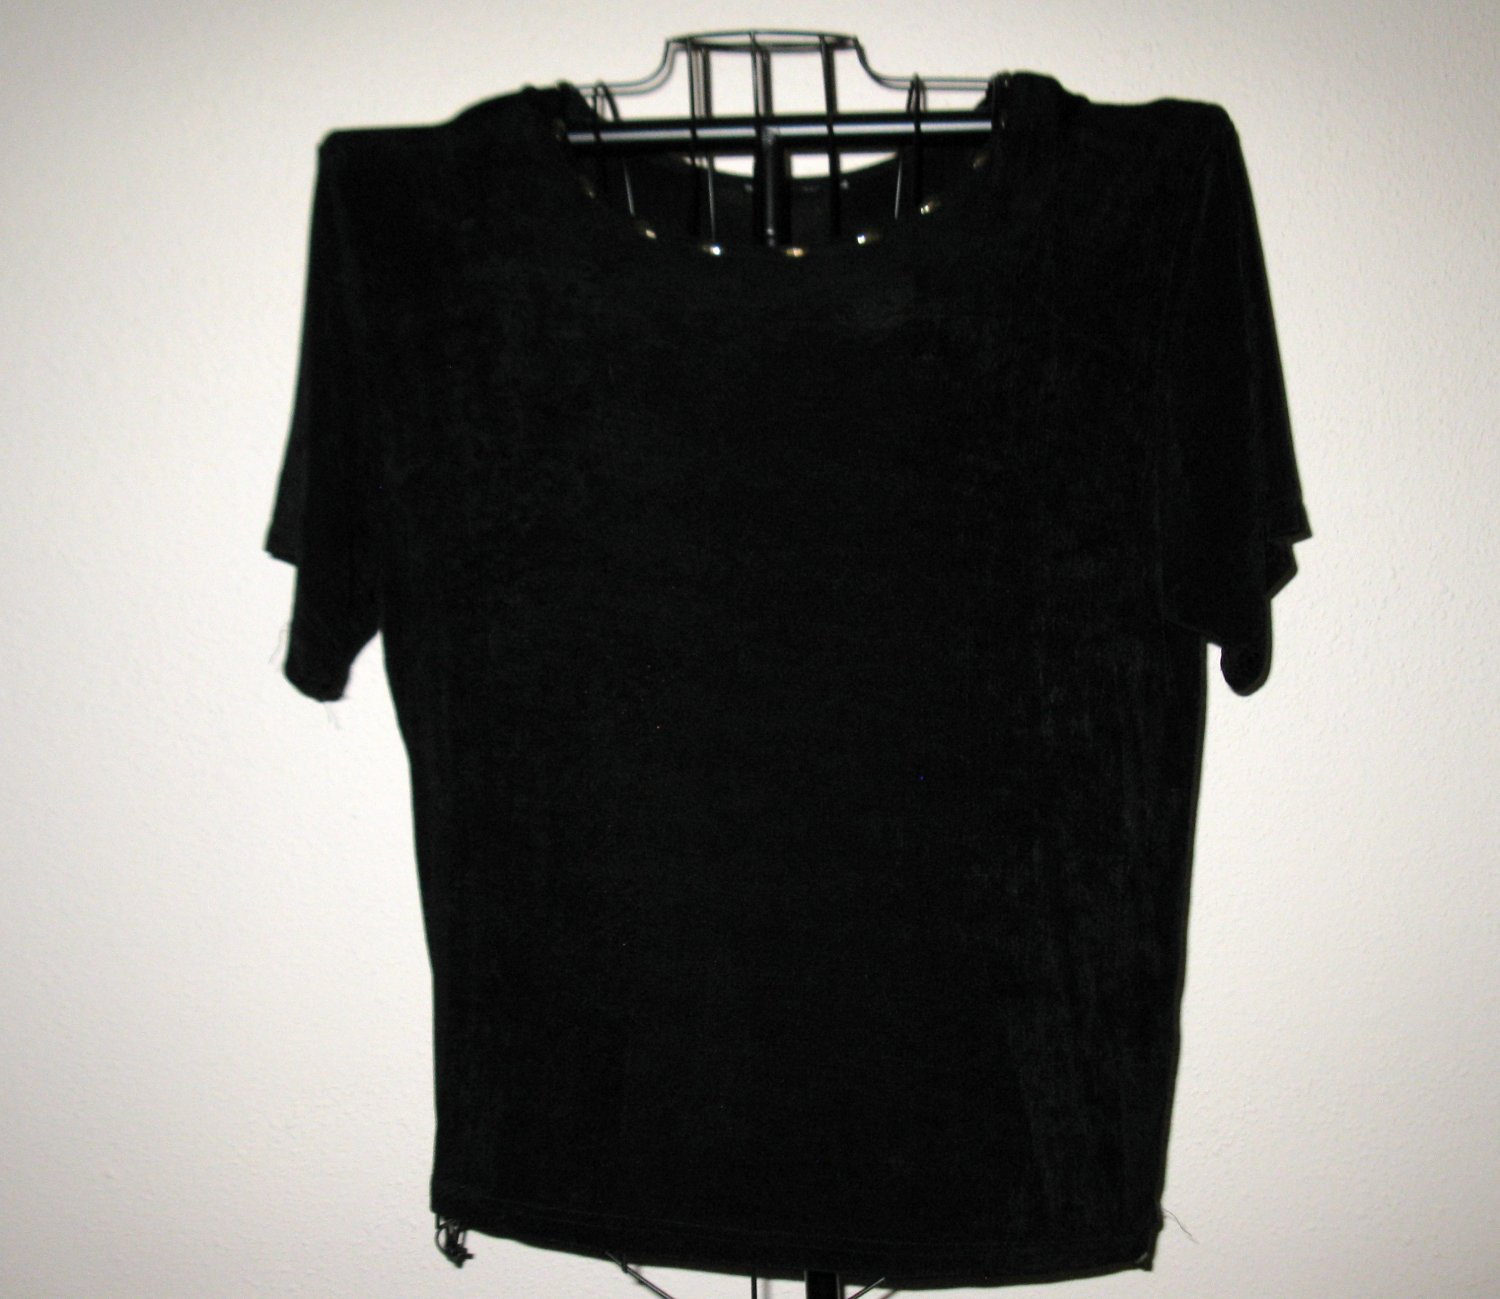 Black Gold Neckline Embellished Top Shirt by Lane Bryant Size 1X